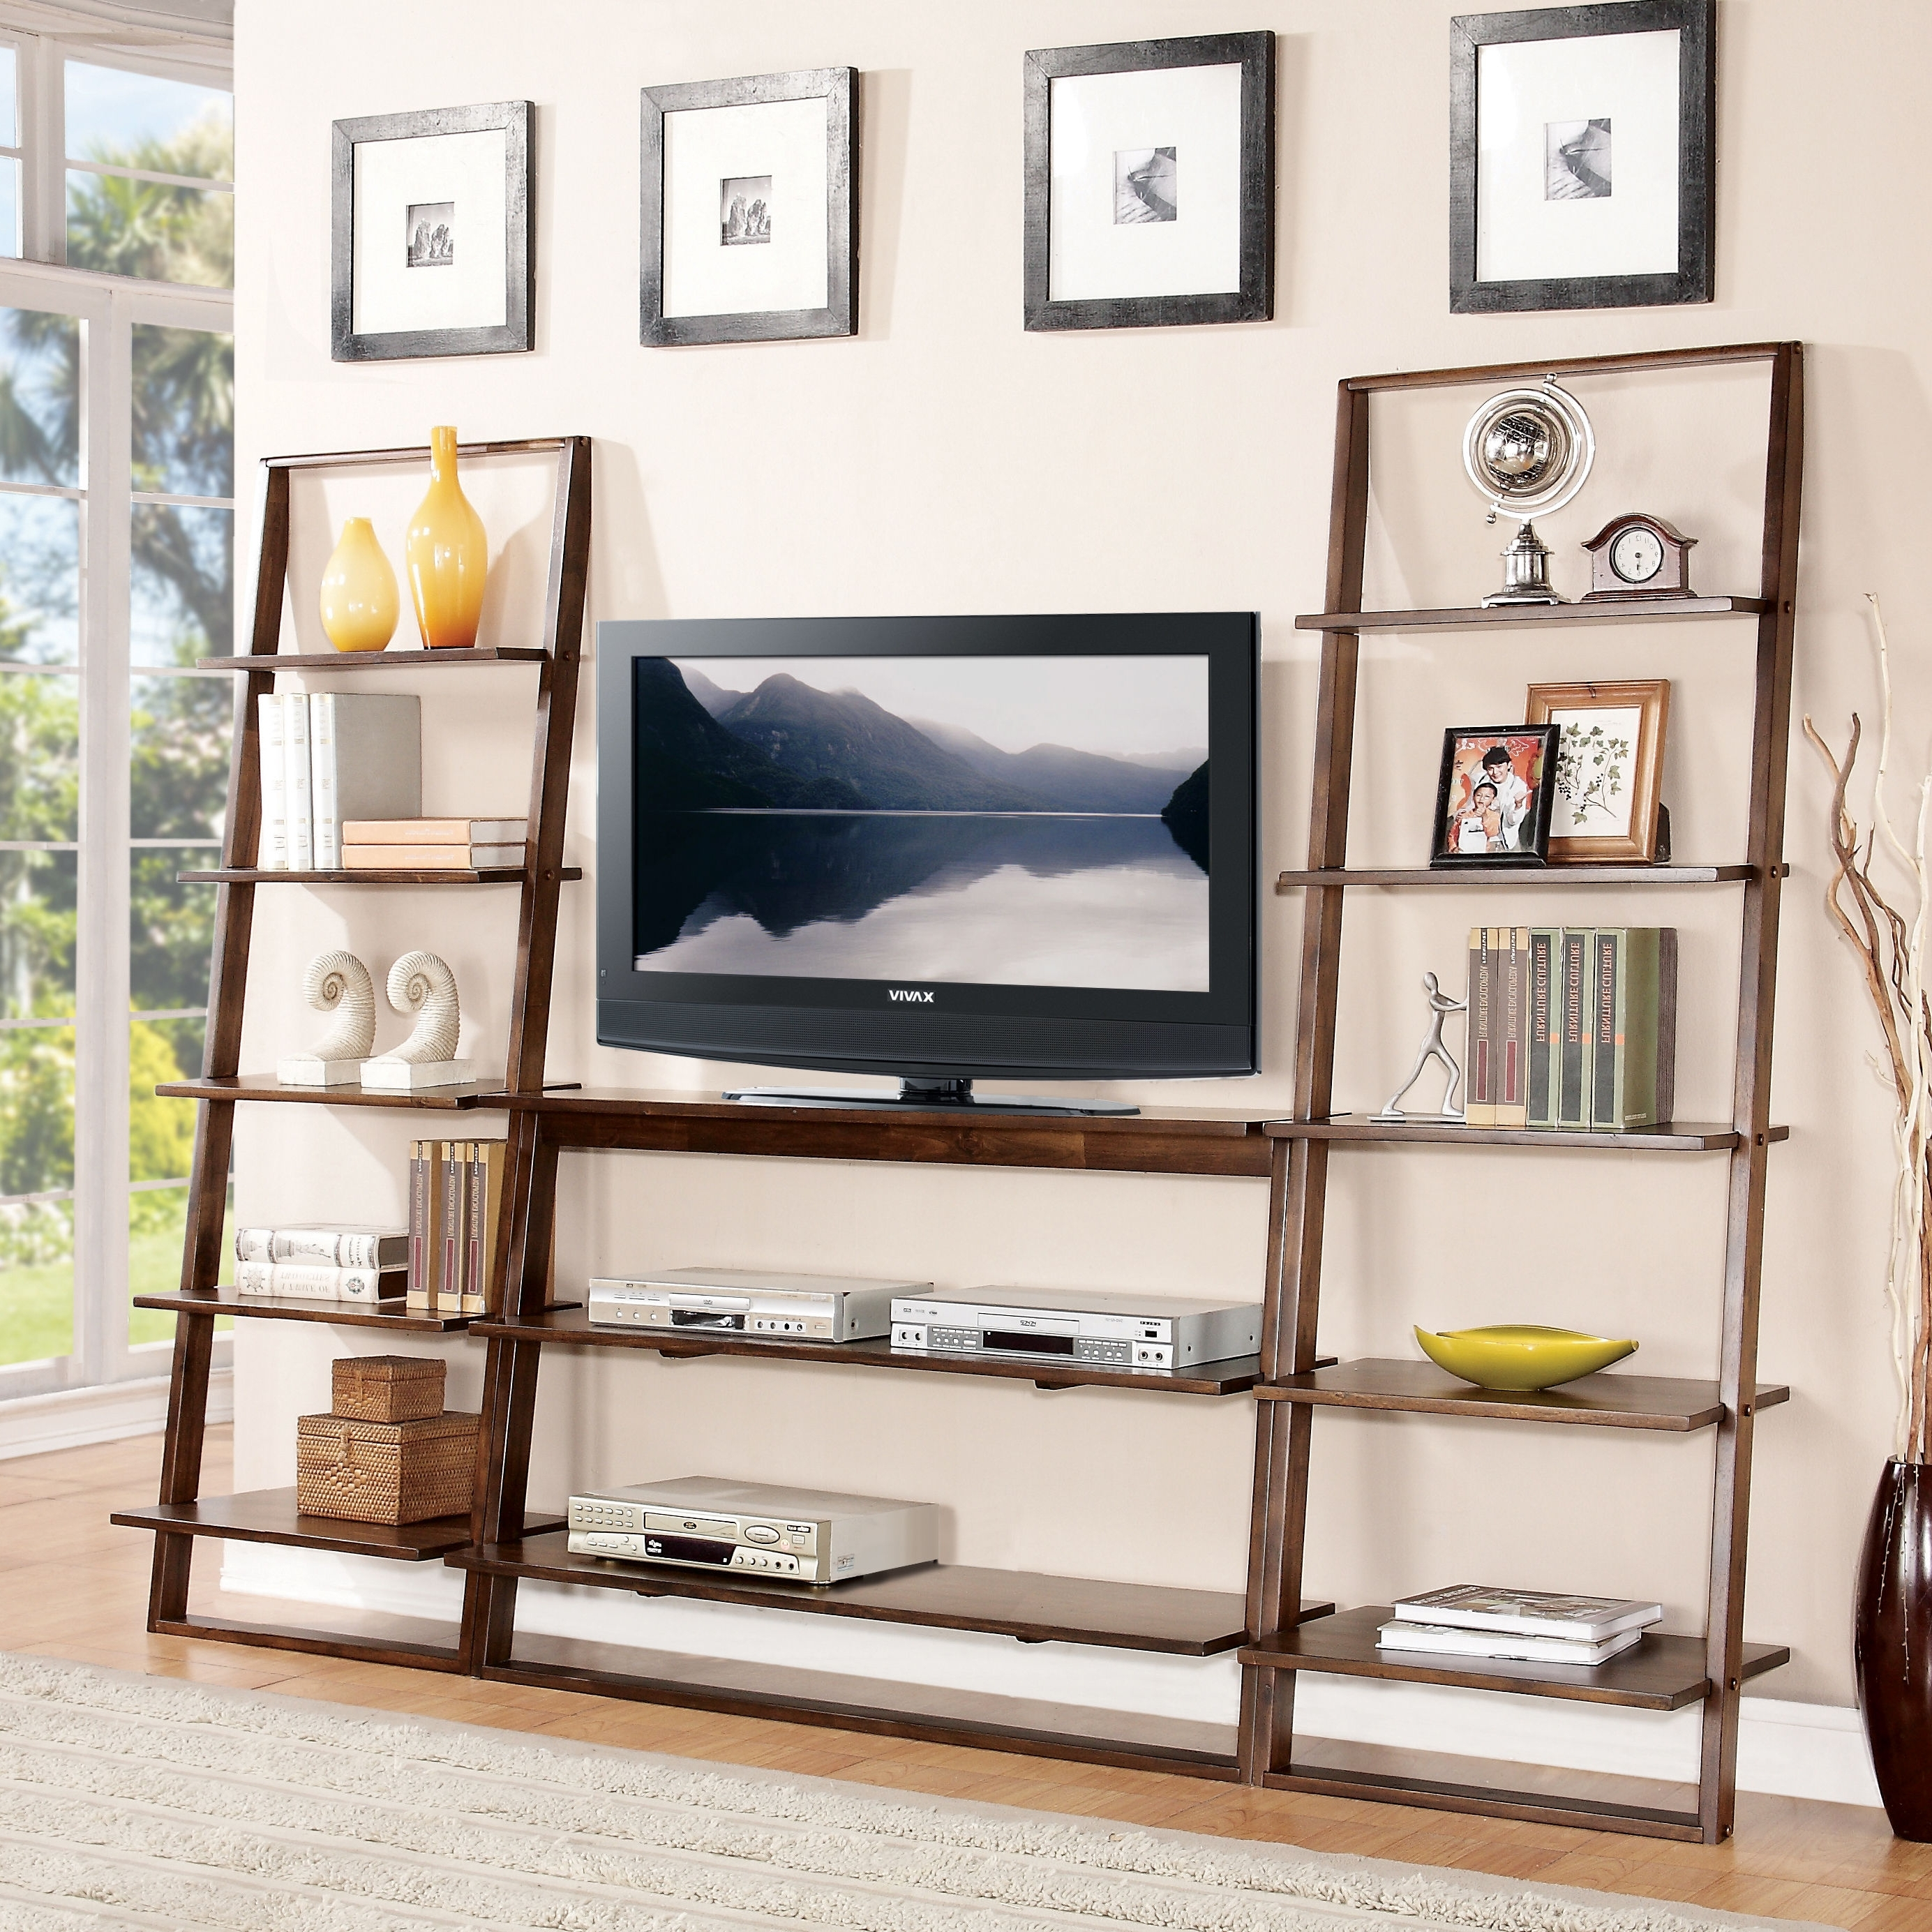 Contemporary Leaning Bookcase Ideas: Minimalist Leaning Bookcase With Regard To Best And Newest Leaning Bookcases (View 9 of 15)